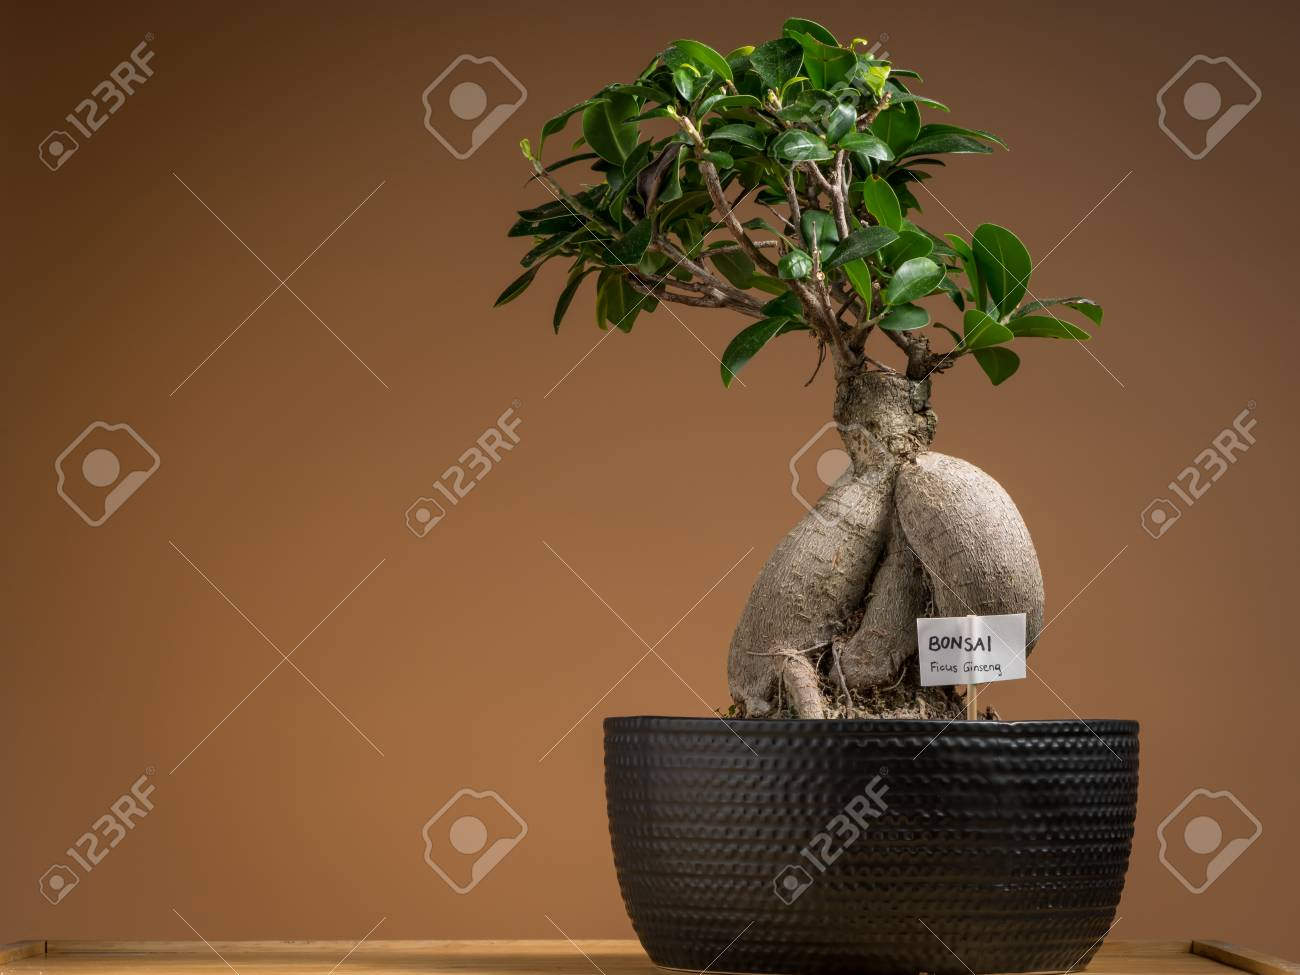 Ficus Ginseng Bonsai A Small Bonsai Ficus Tree Ficus Ginseng Planted In A Black